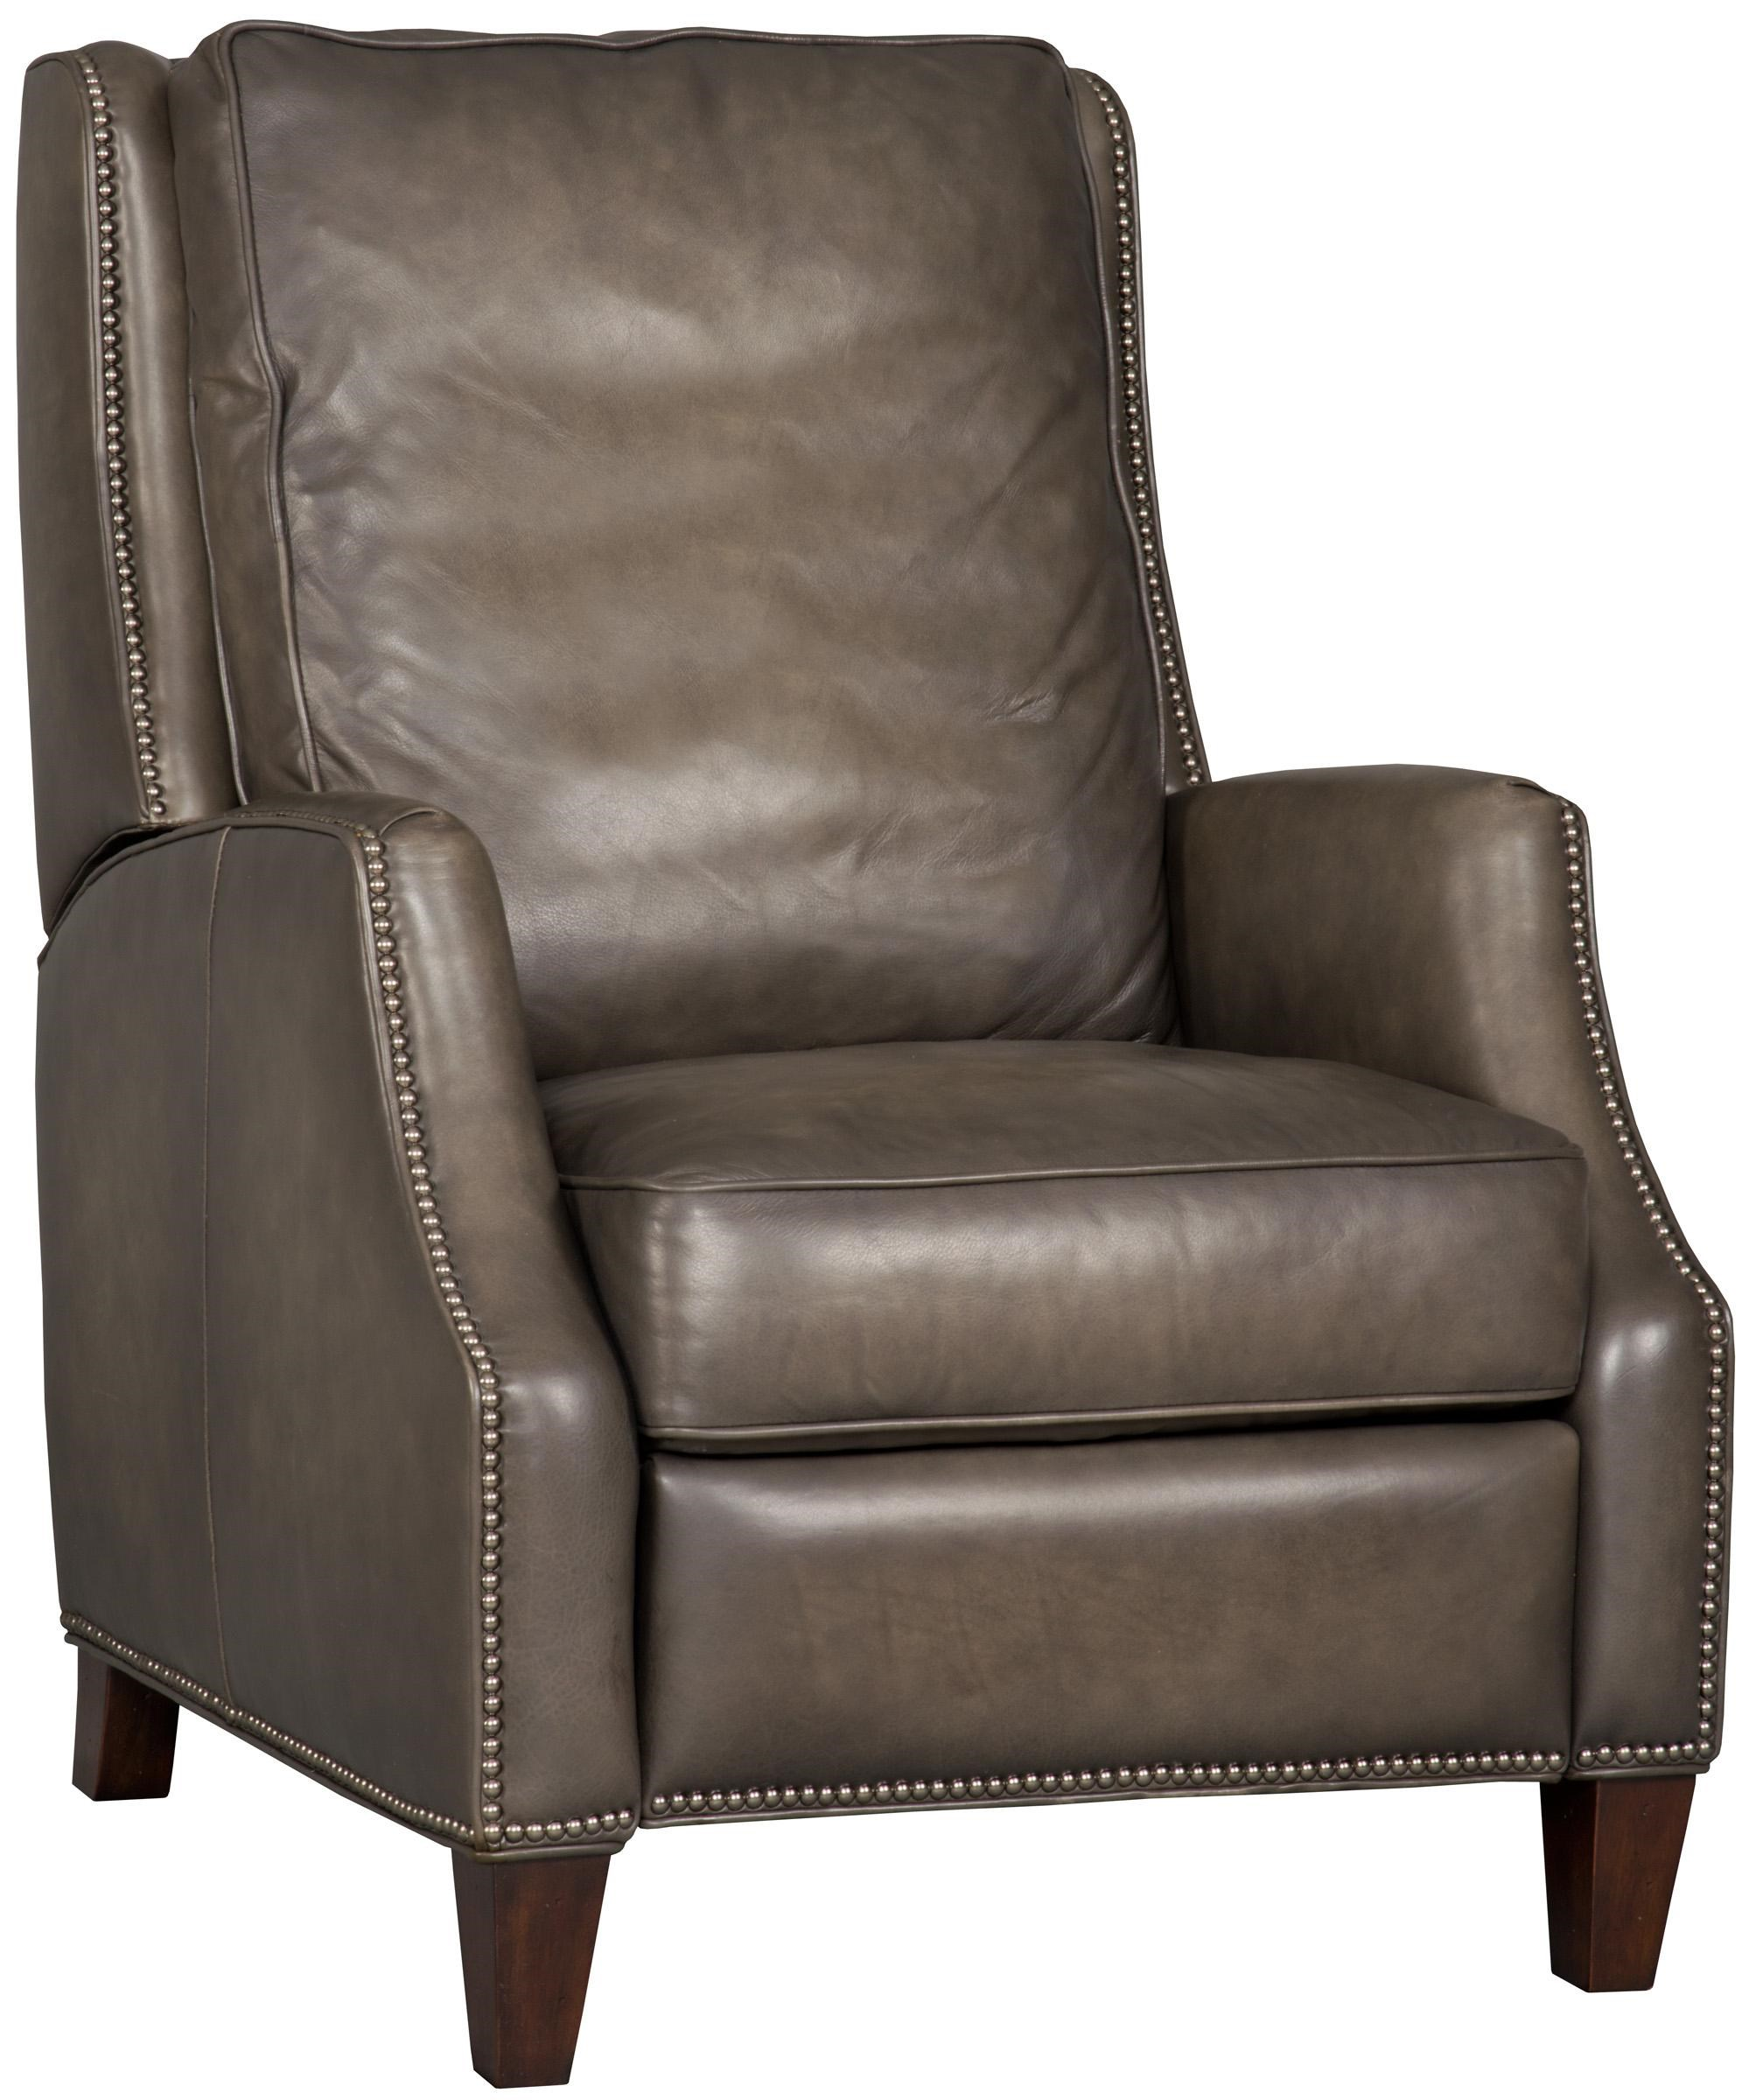 Hooker Furniture Reclining Chairs RC260 095 Recliner Chair